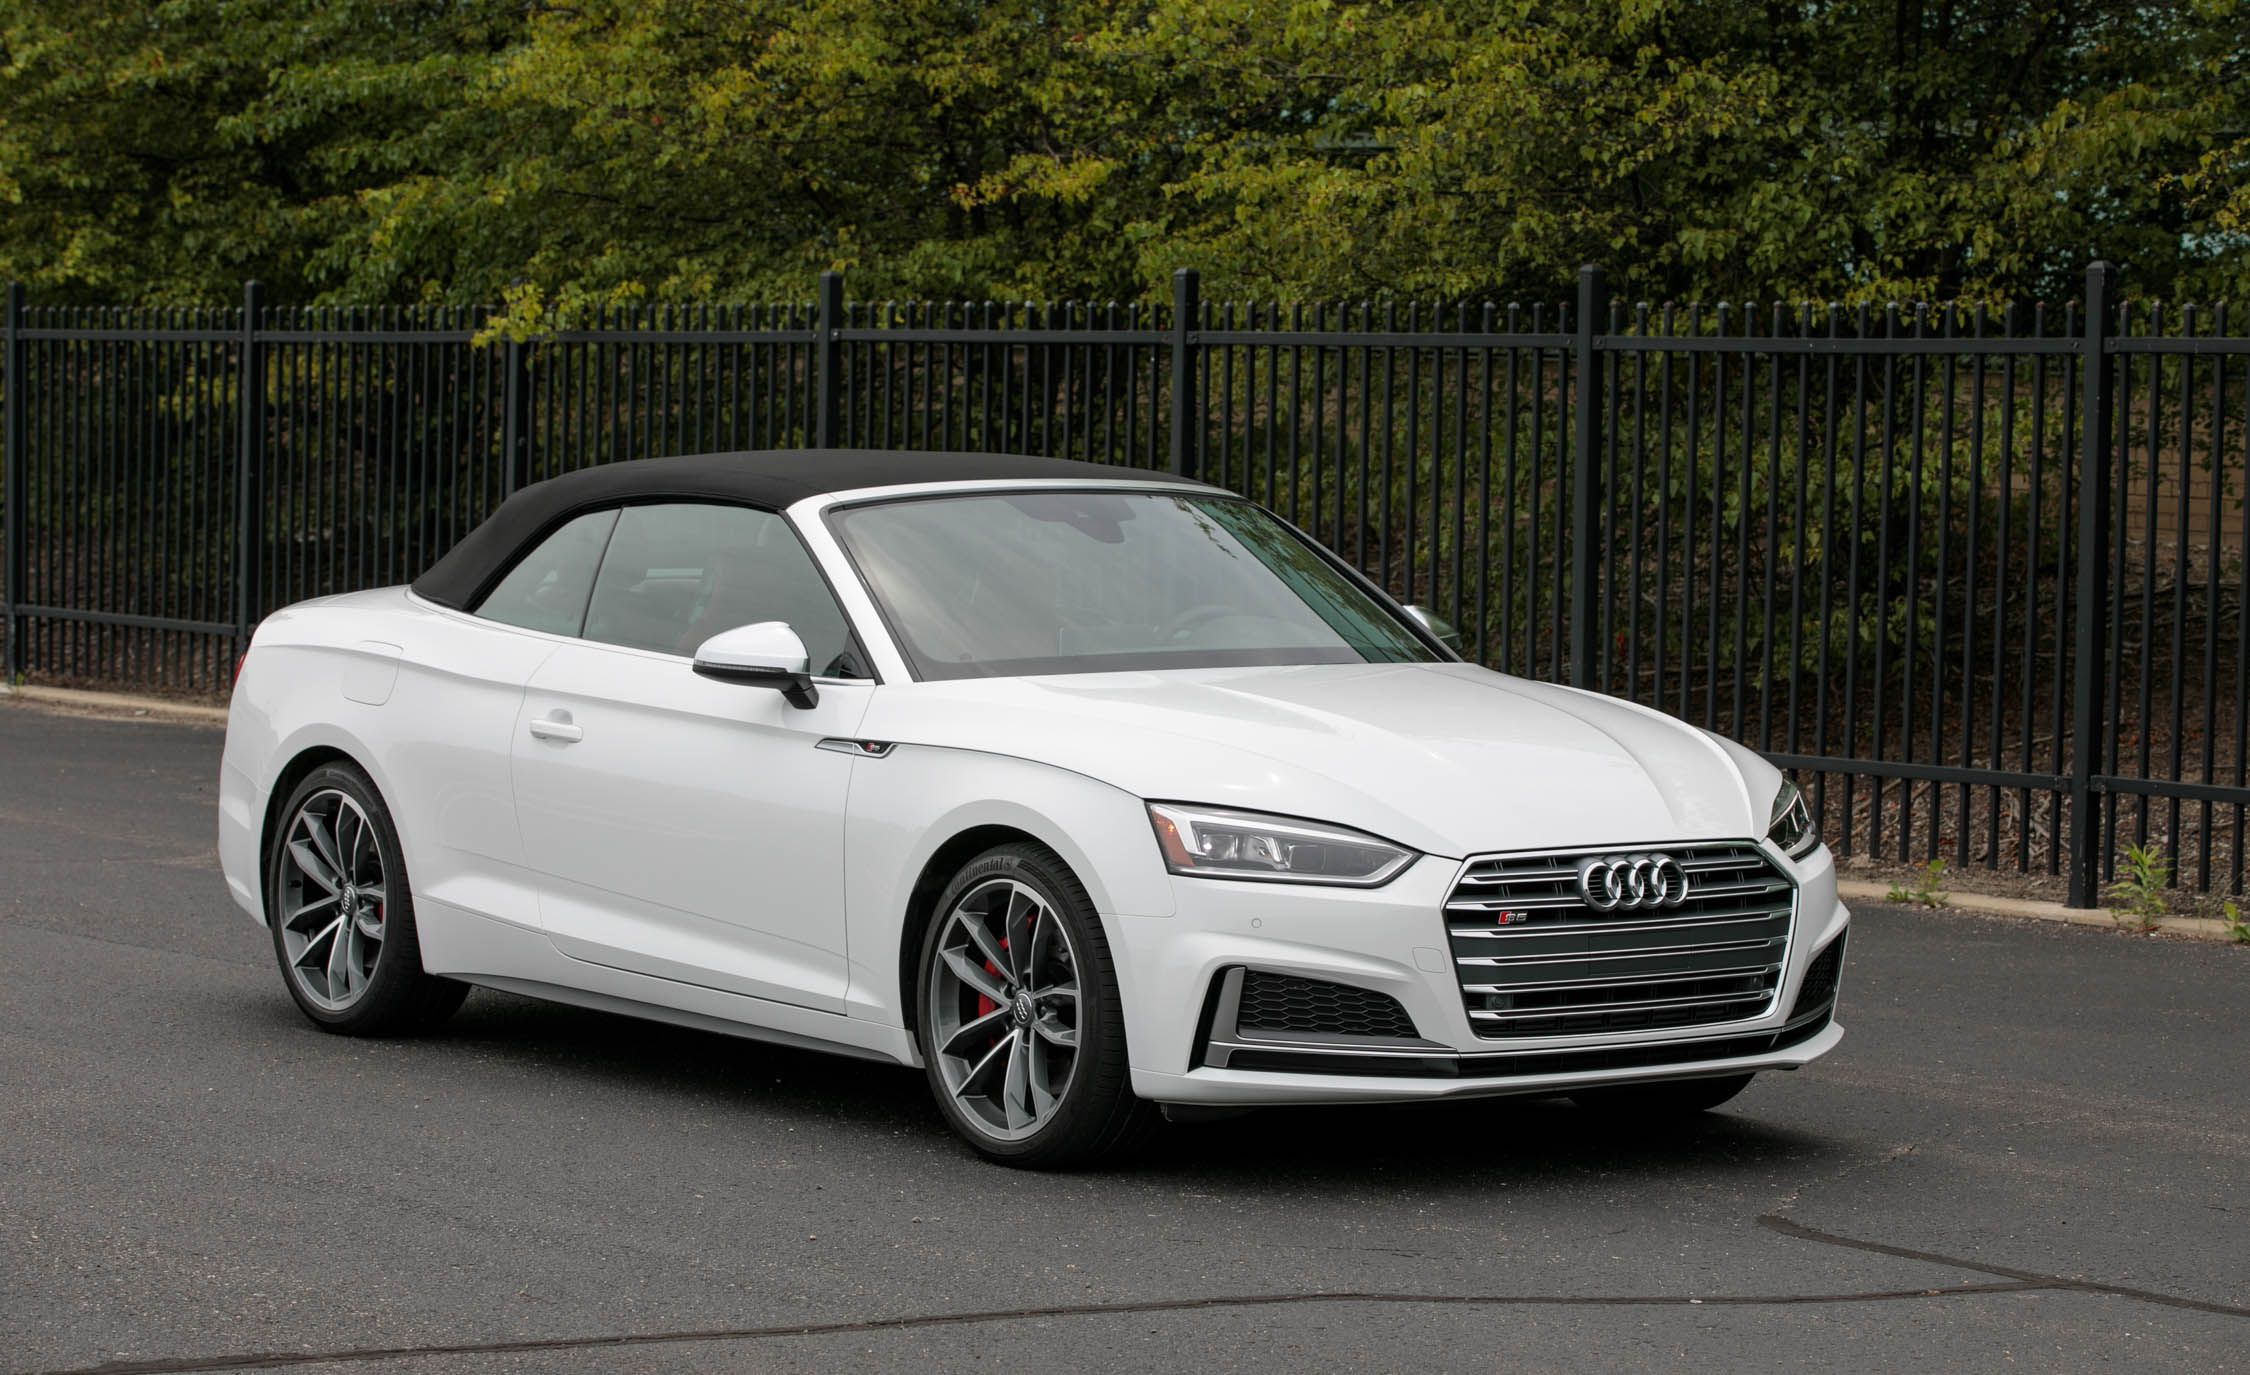 2018 Audi S5 Coupe And Cabriolet Interior Review Car And Driver